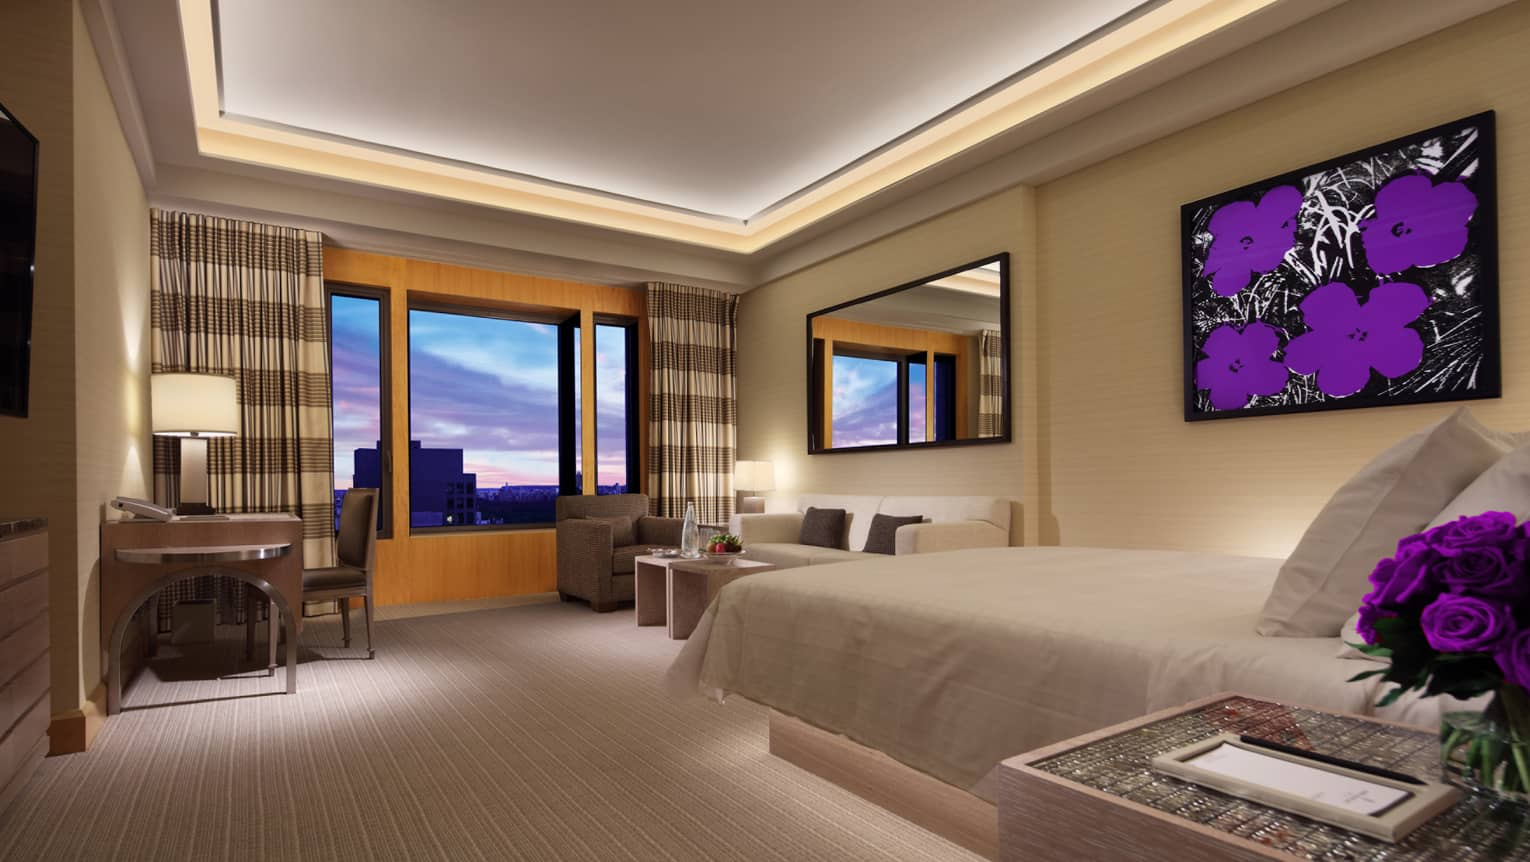 Superb Luxury Hotel Suites Nyc Deluxe Rooms Four Seasons New York Home Interior And Landscaping Mentranervesignezvosmurscom